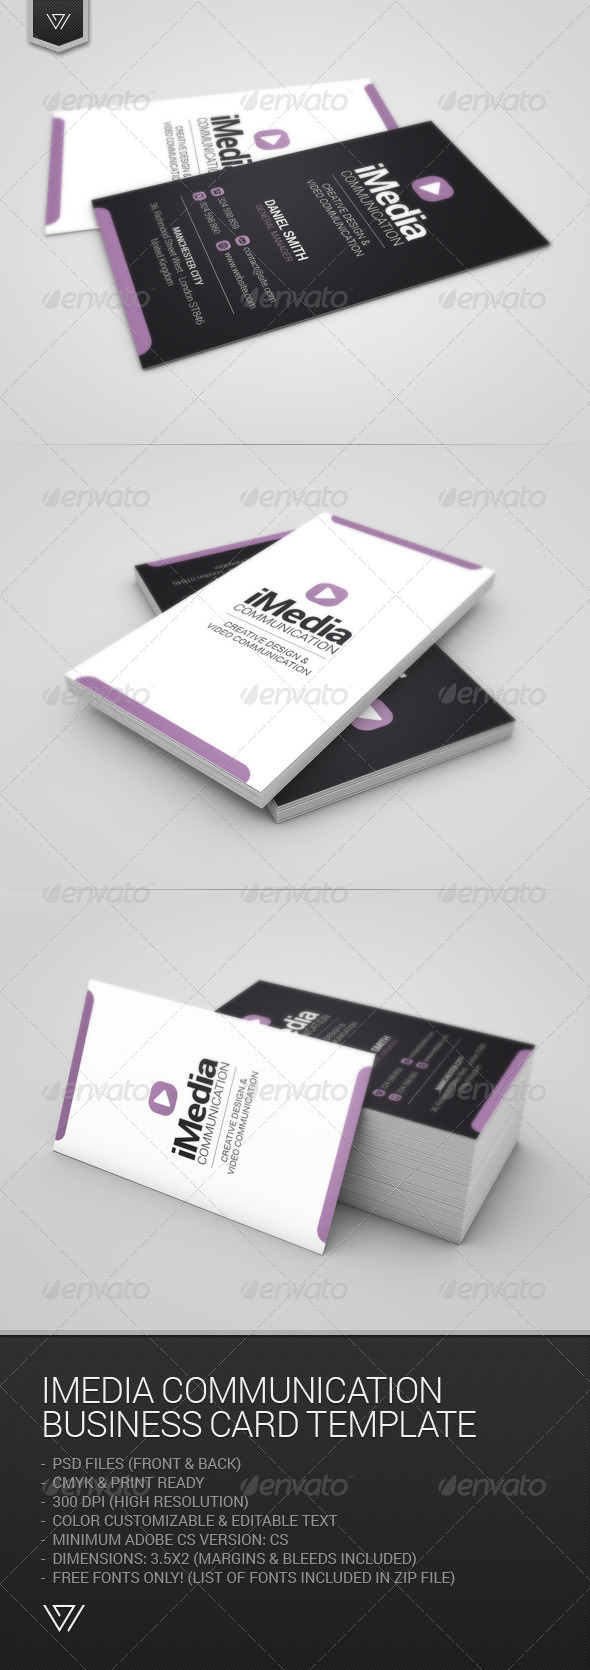 GraphicRiver Imedia Communication Business Card 7750826